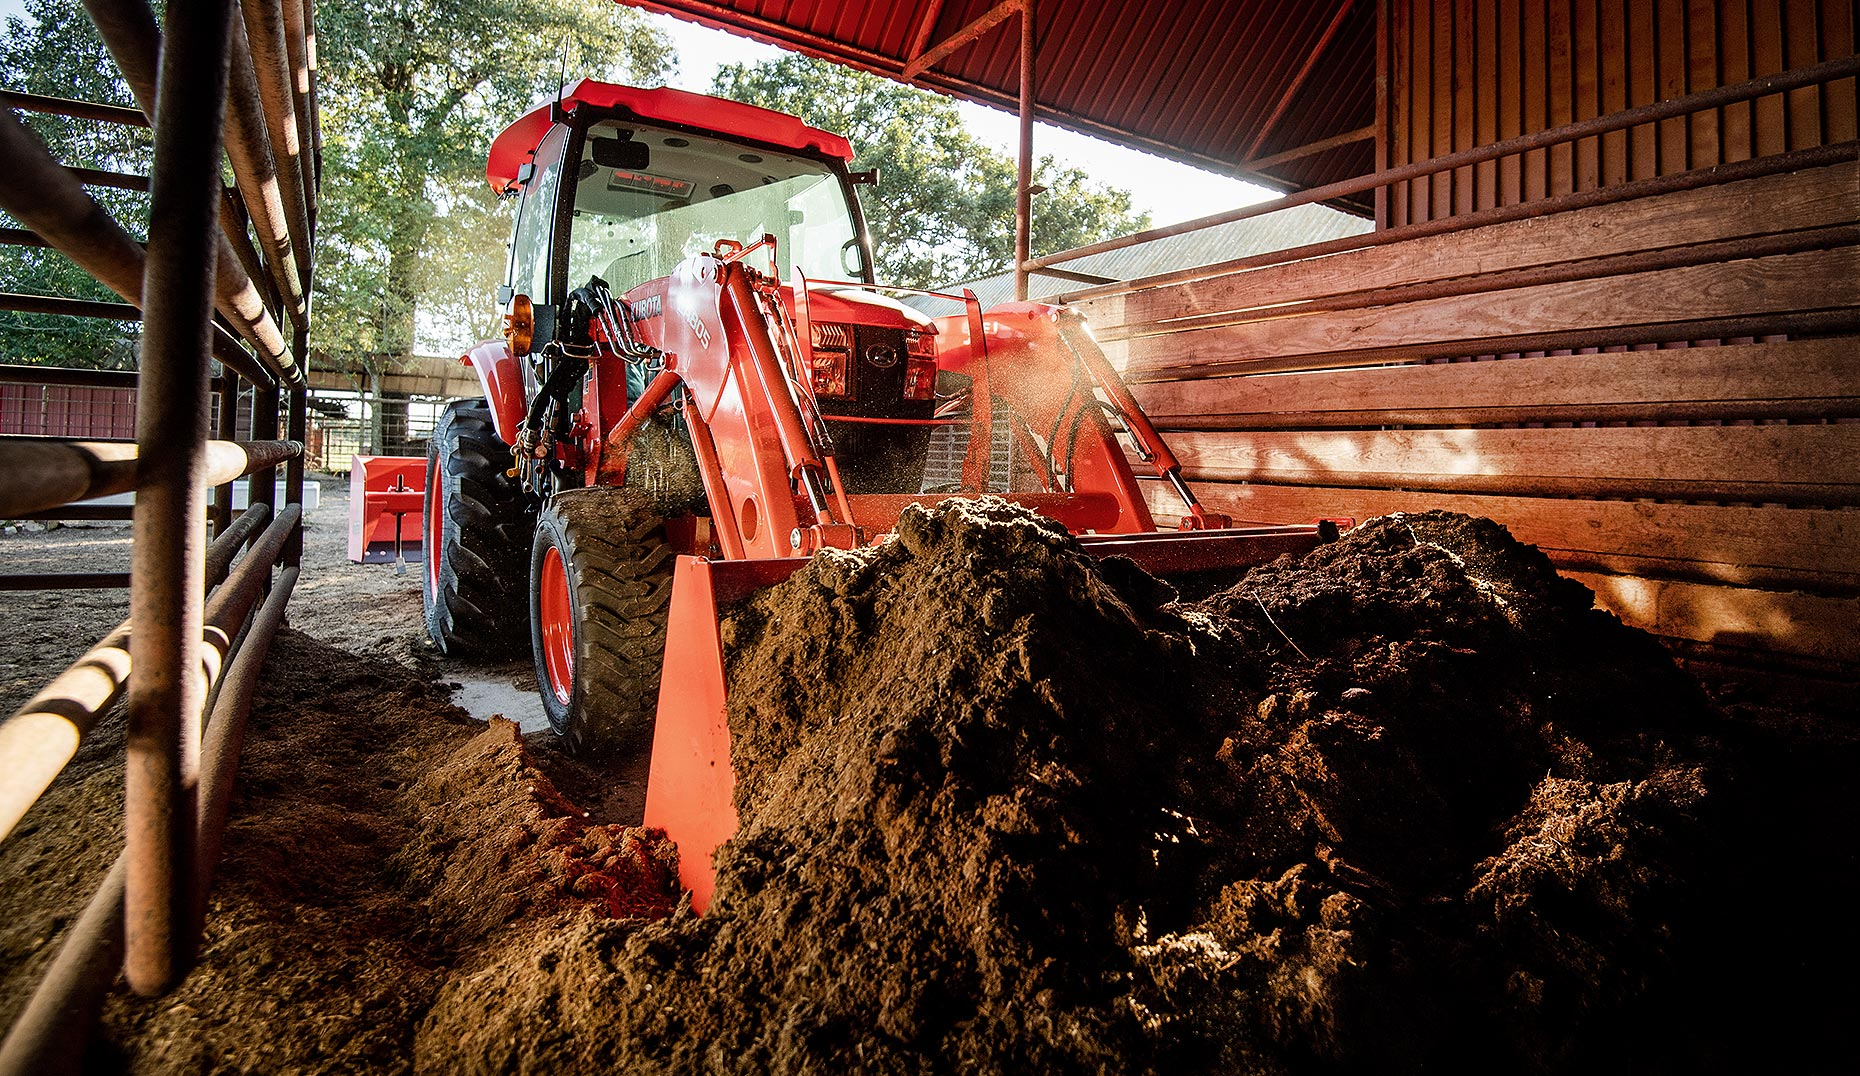 Tractor Scooping Manure in Barn